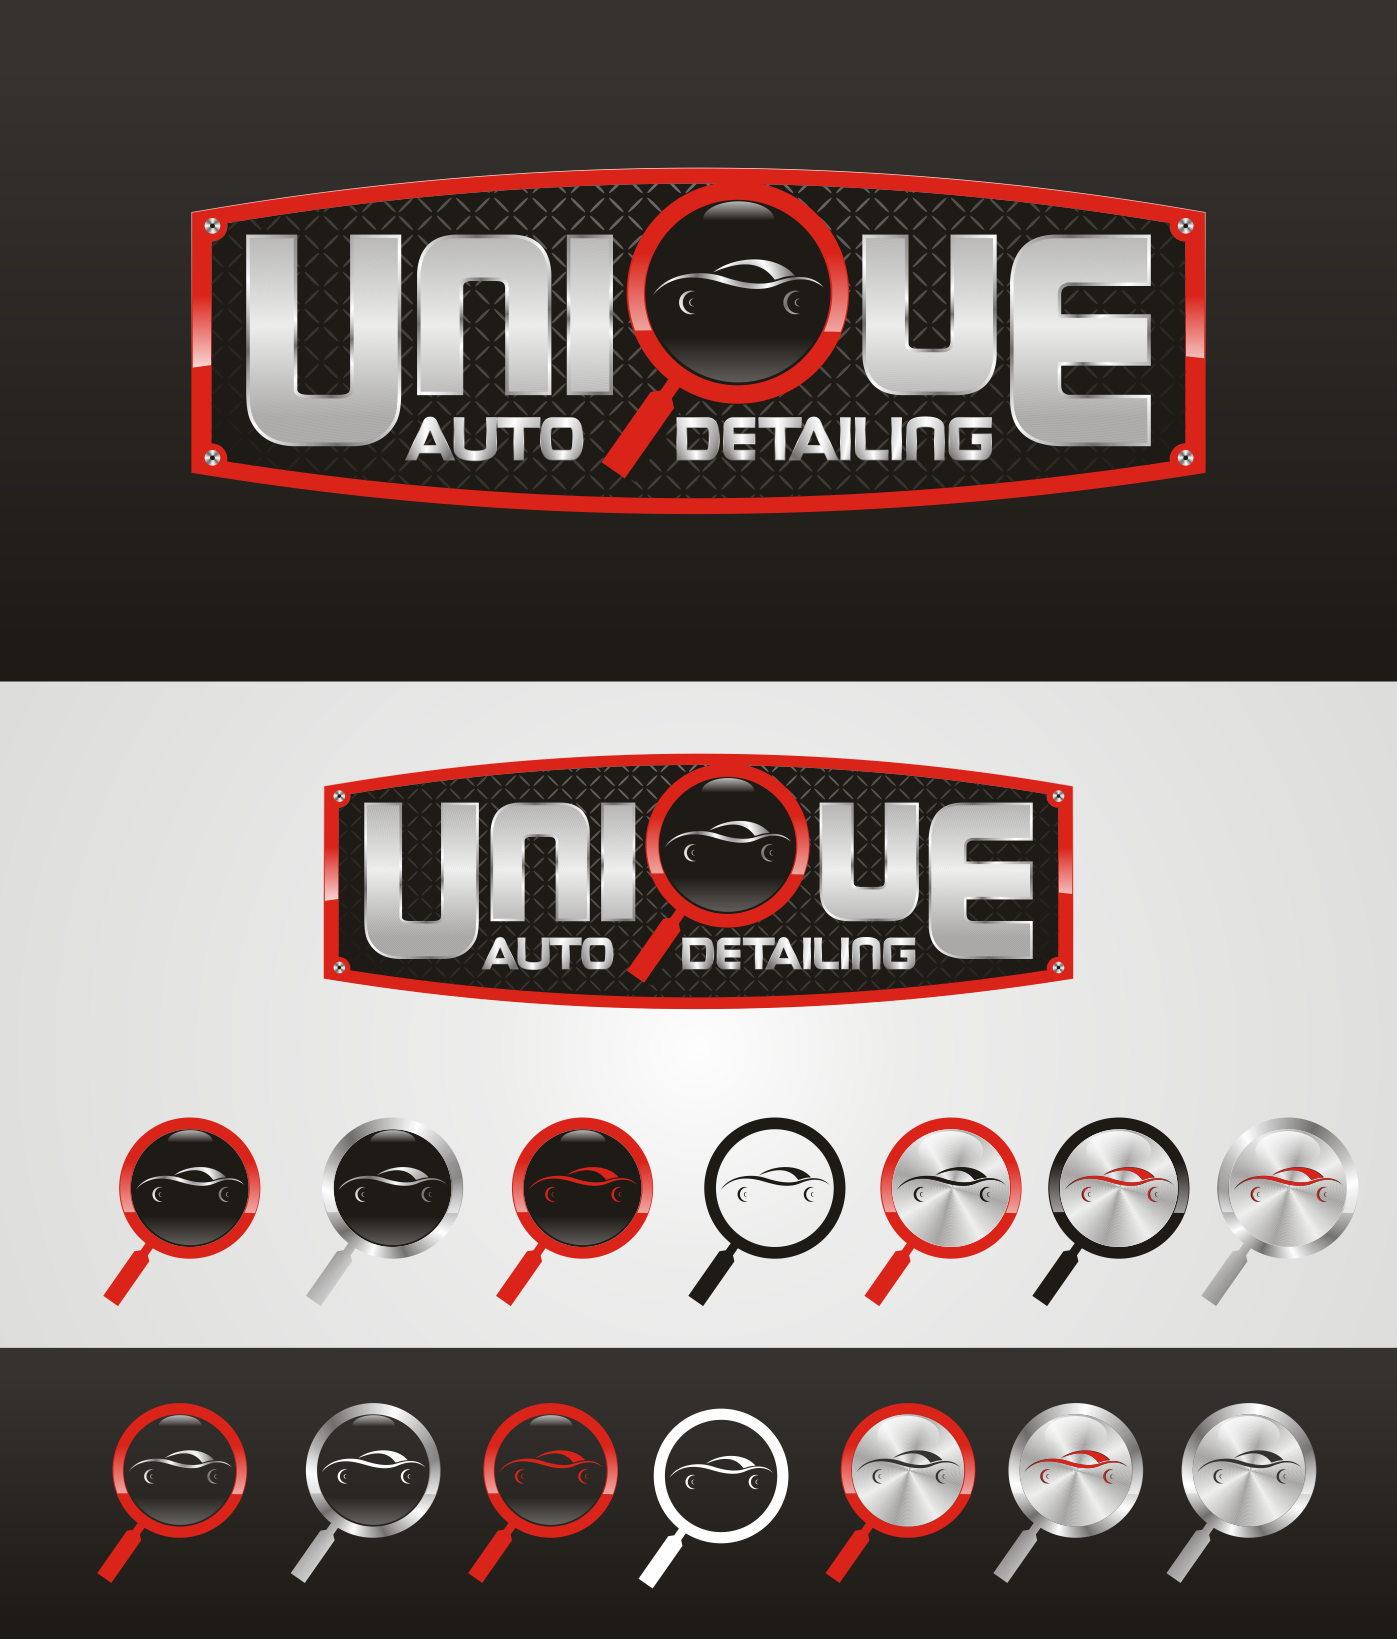 UNIQUE AUTO DETAILING needs a new logo